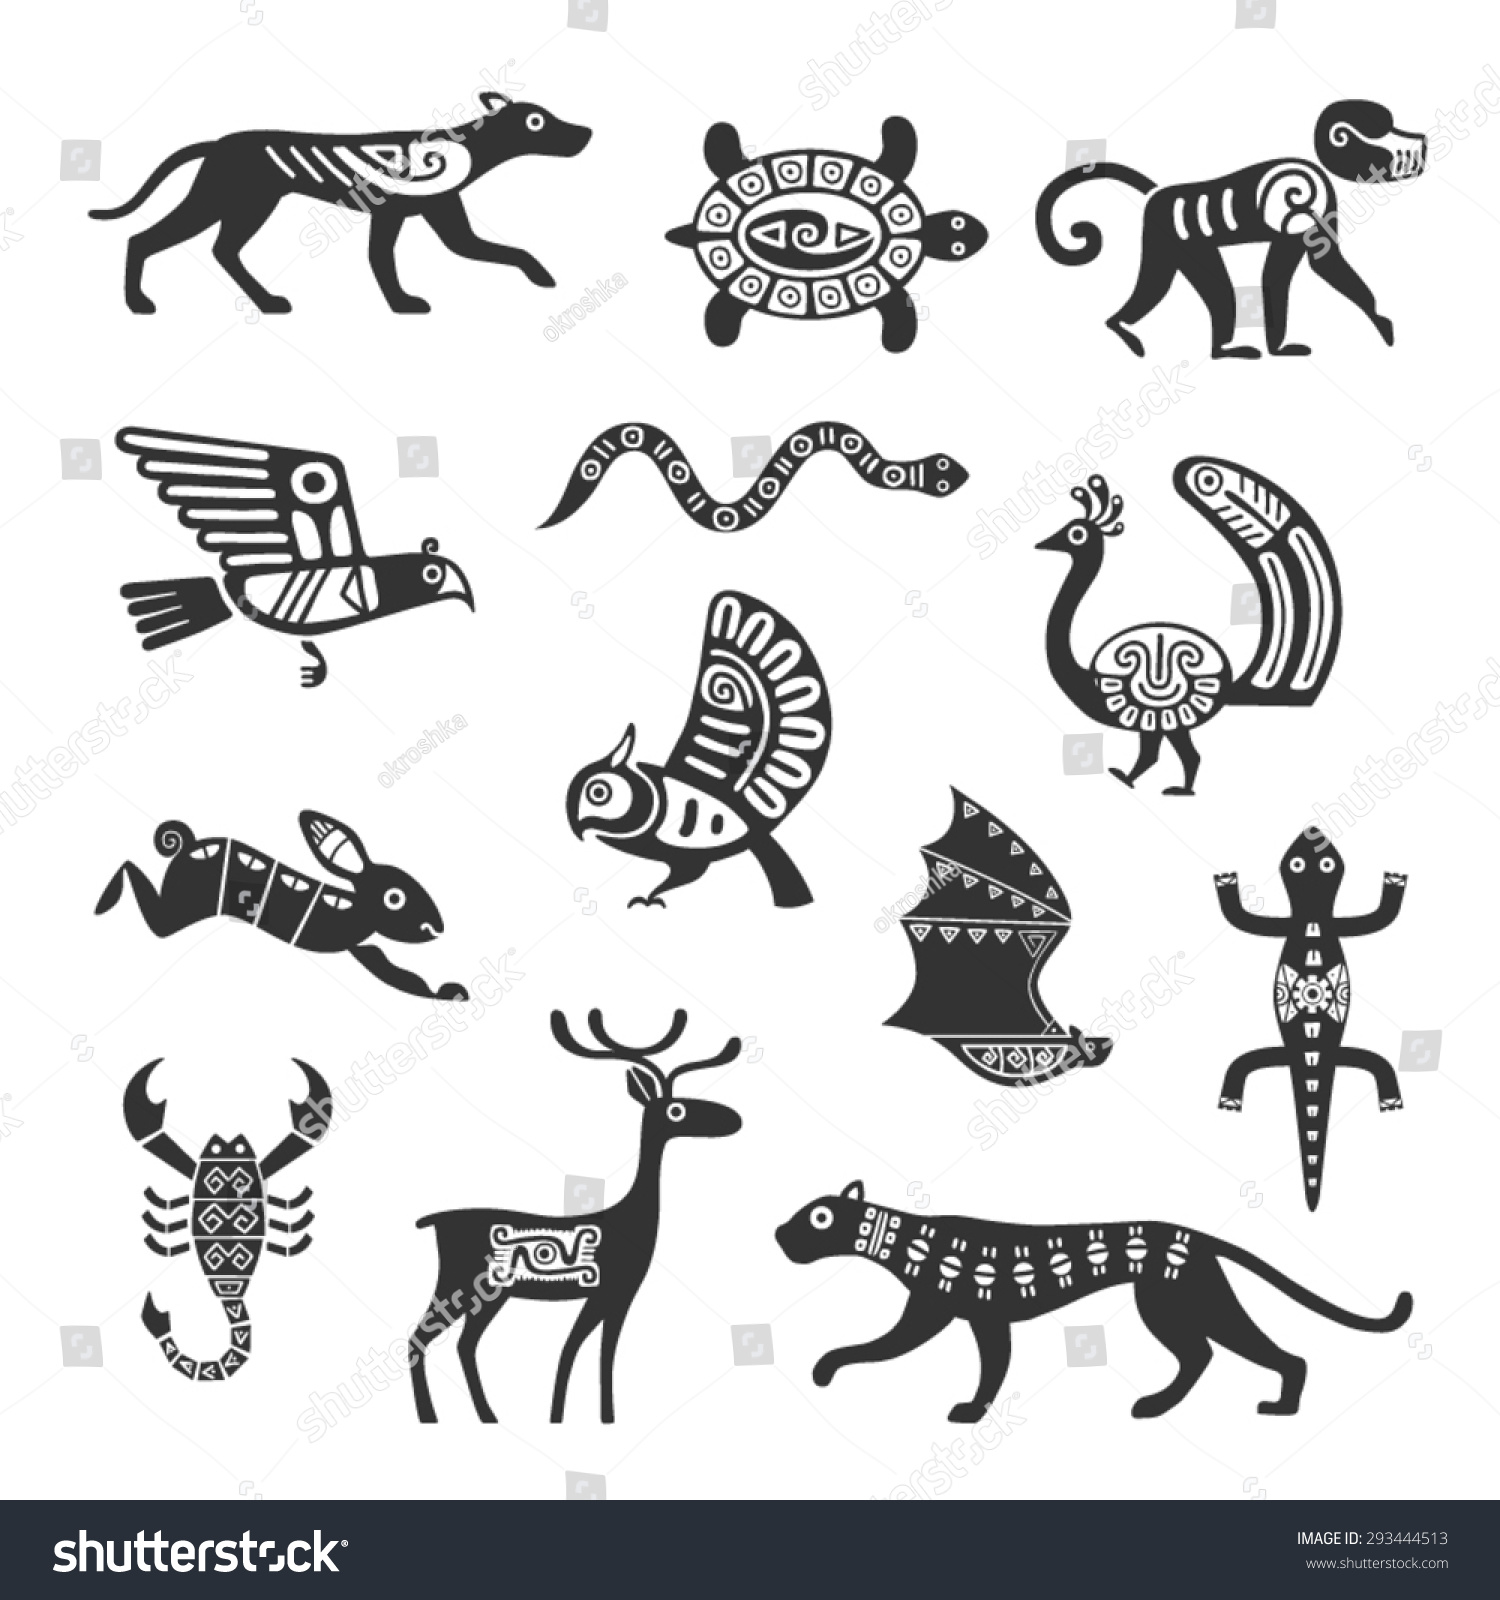 Animal ornaments - Ethnic Tribal Totem Animal With Patterns And Ornaments